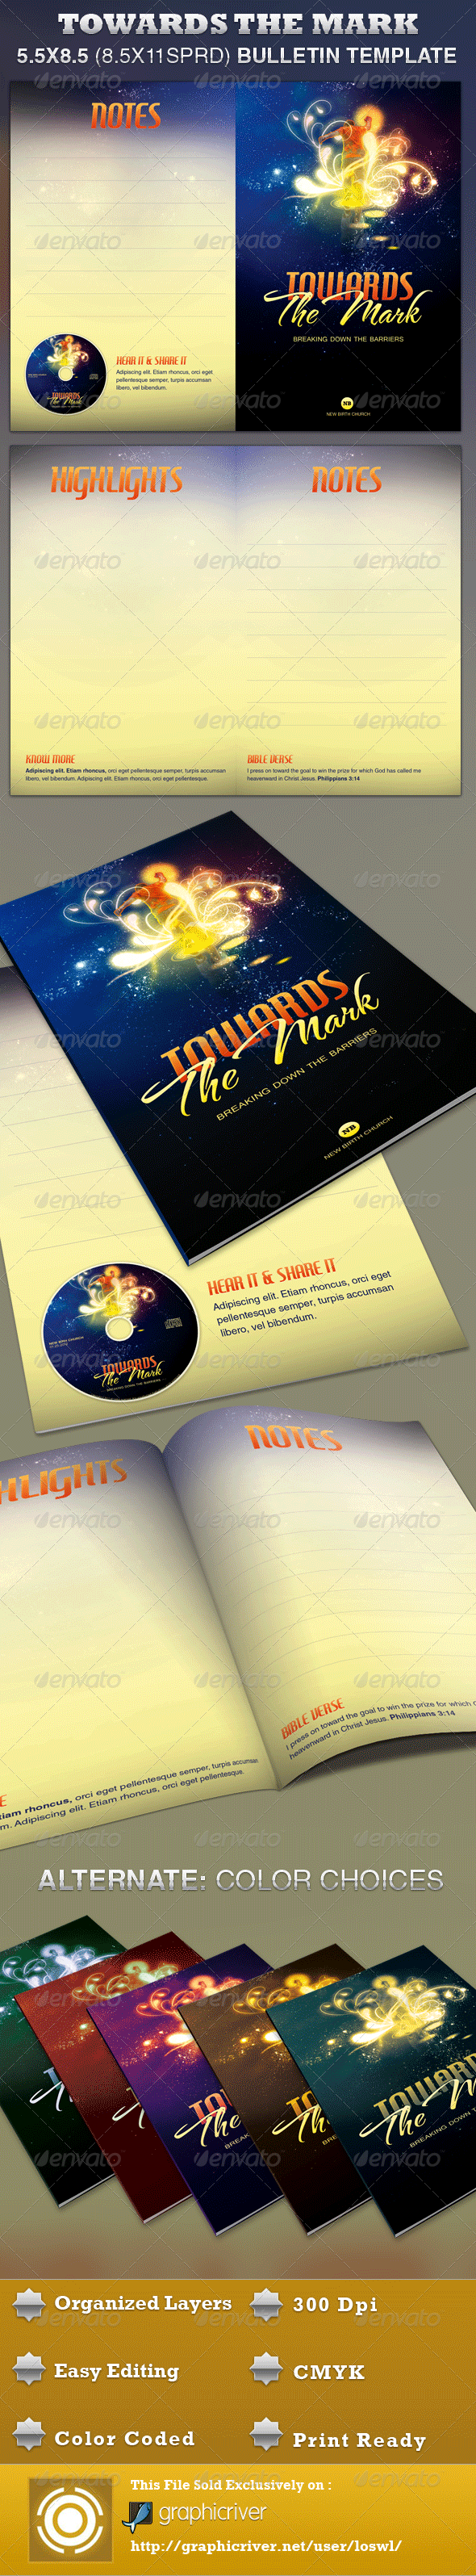 Towards the Mark Church Bulletin Template - Informational Brochures